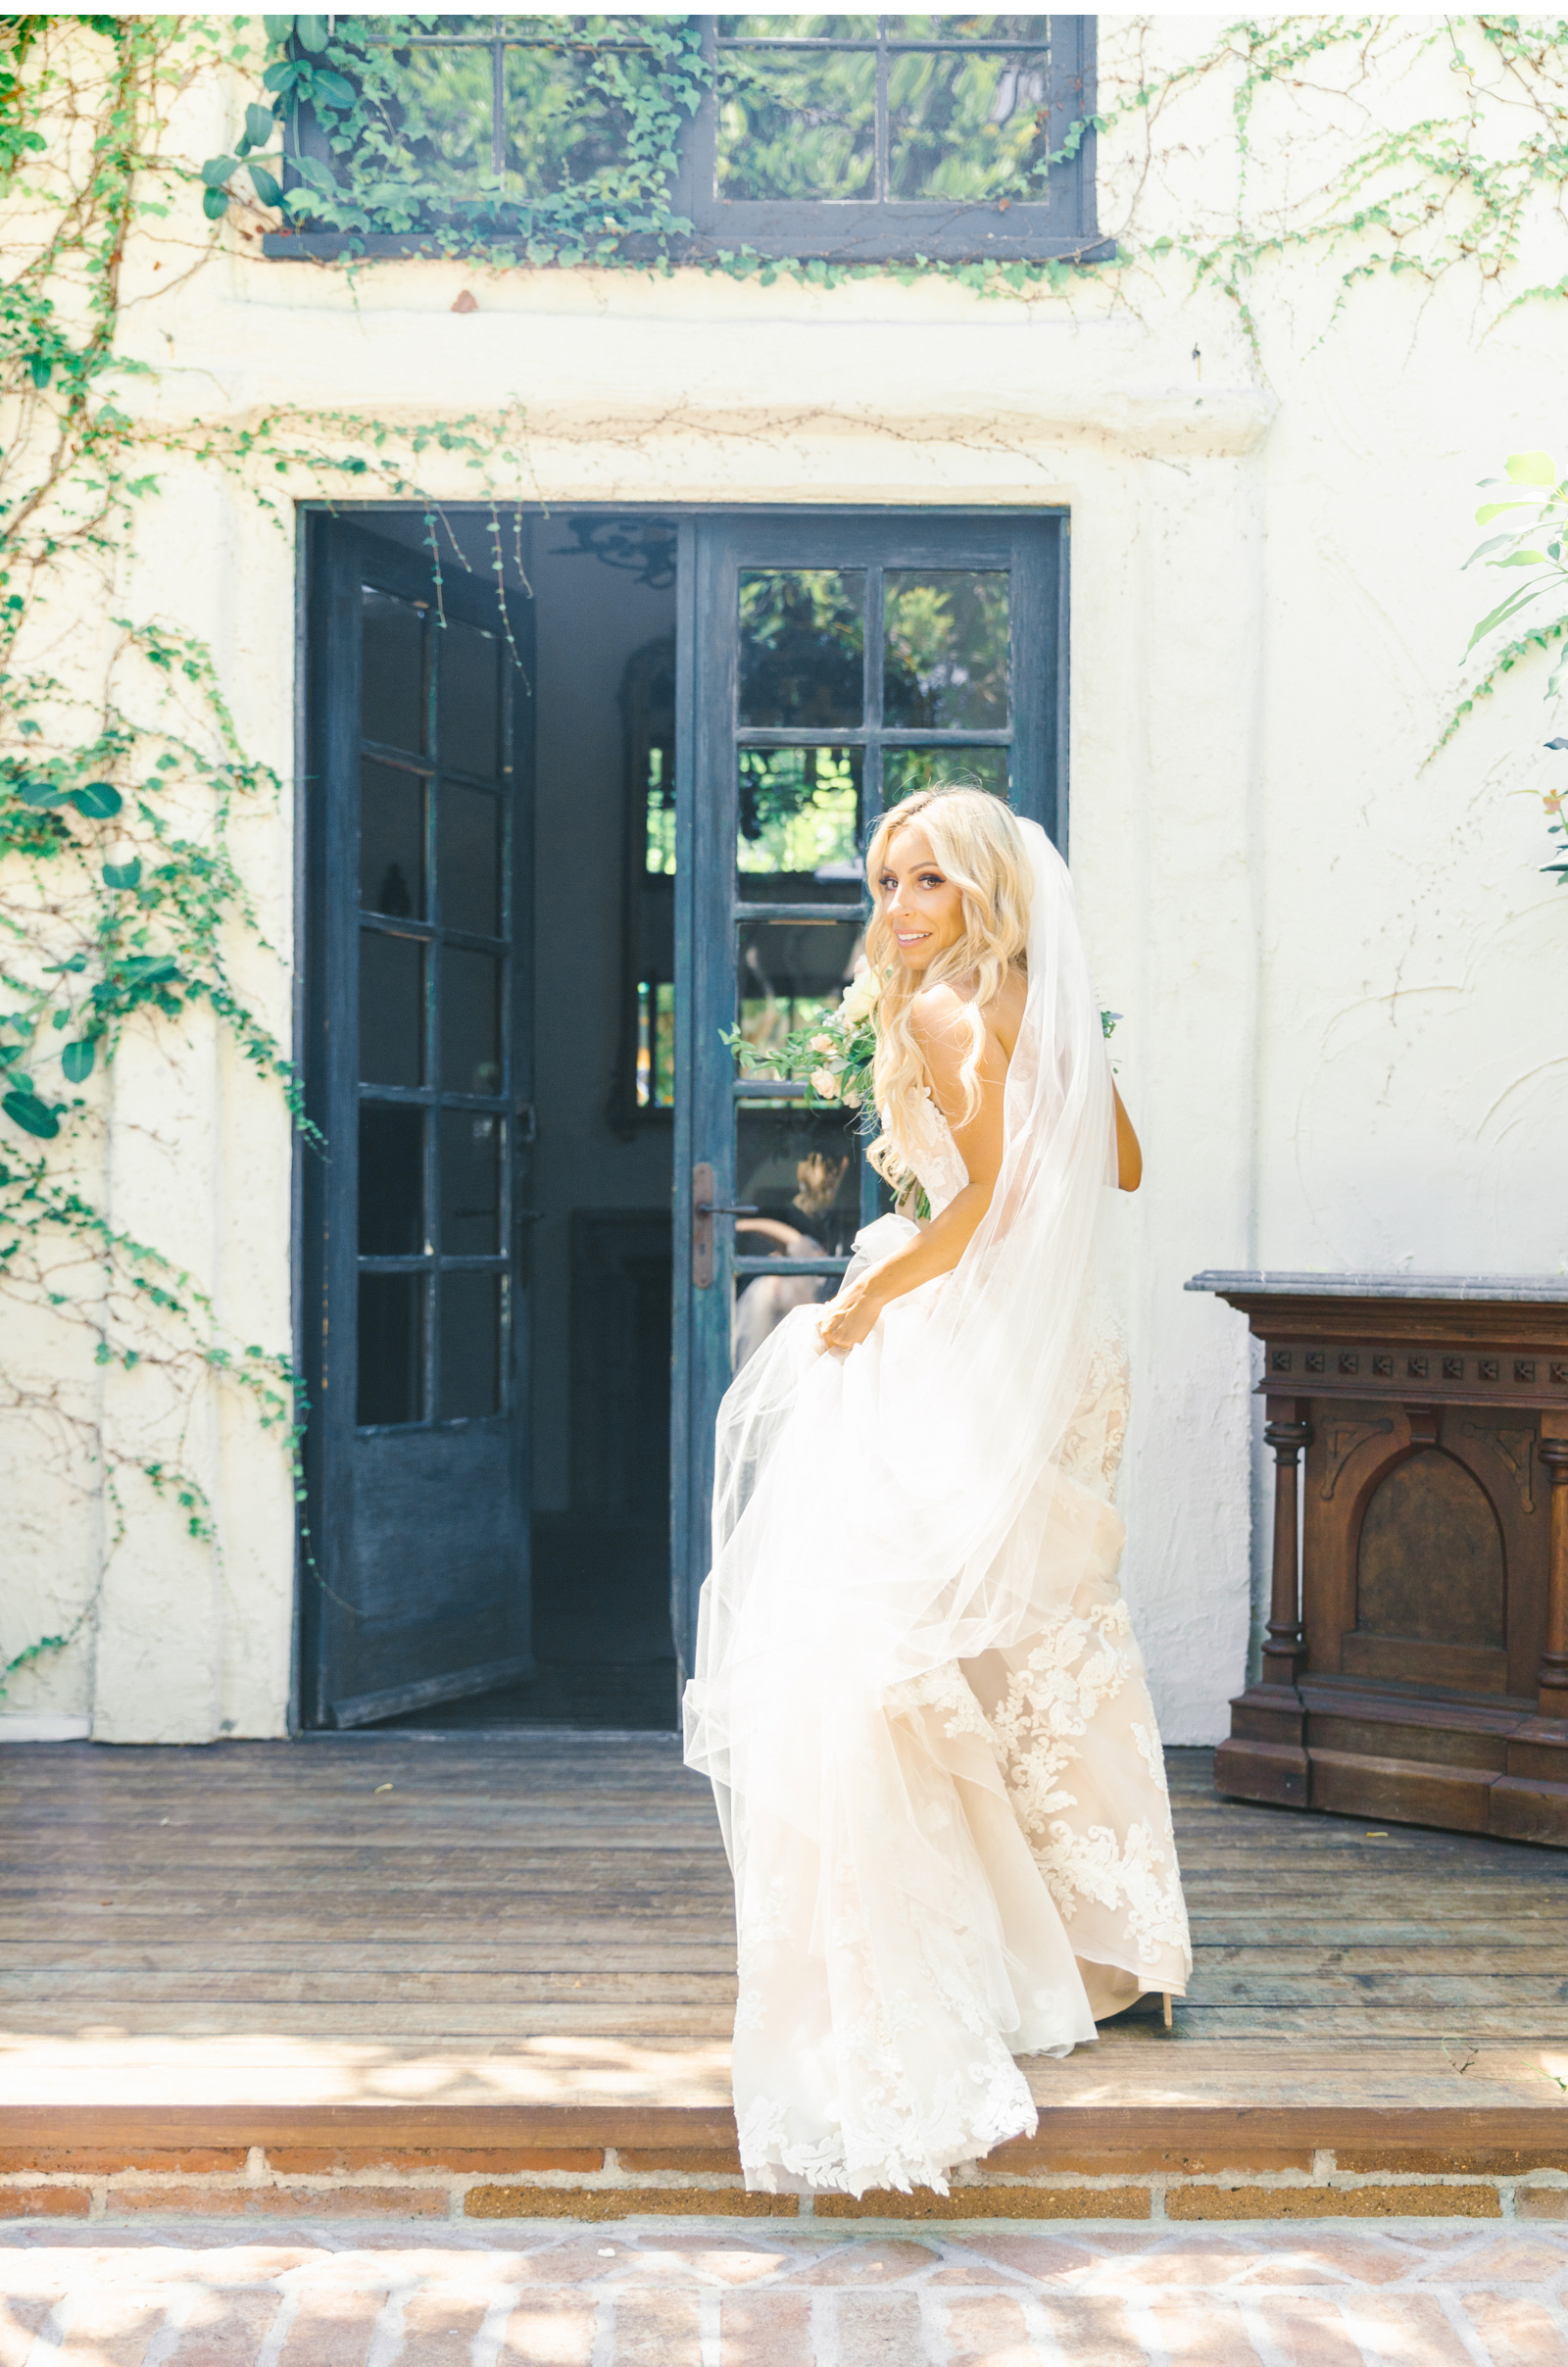 Saddle-Rock-Ranch-Photographer-Malibu-Weddings-San-Juan-Capistrano-Wedding-Venue-Natalie-Schutt-Photography_11.jpg